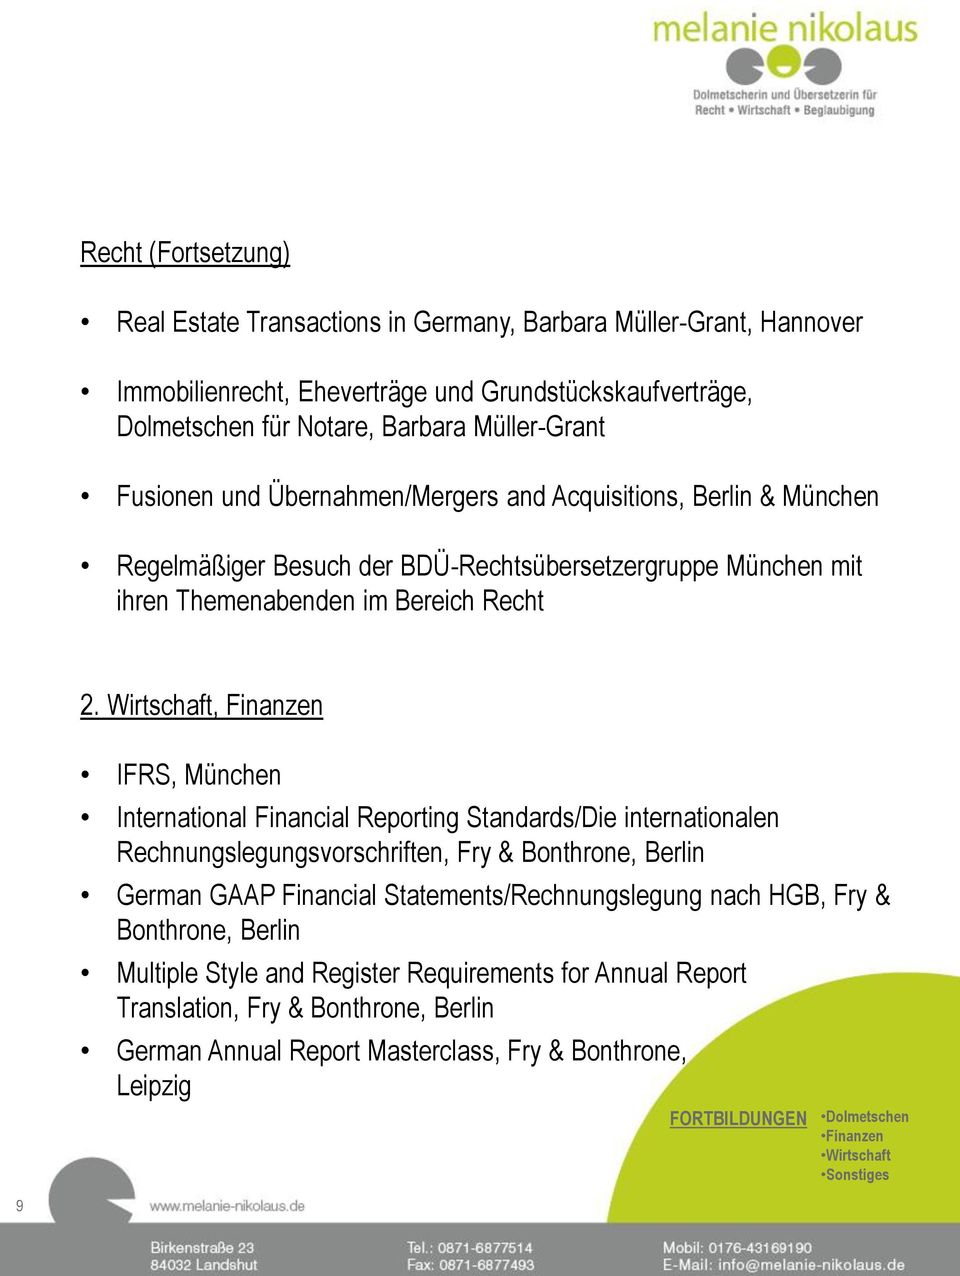 Wirtschaft, Finanzen IFRS, München International Financial Reporting Standards/Die internationalen Rechnungslegungsvorschriften, Fry & Bonthrone, Berlin German GAAP Financial